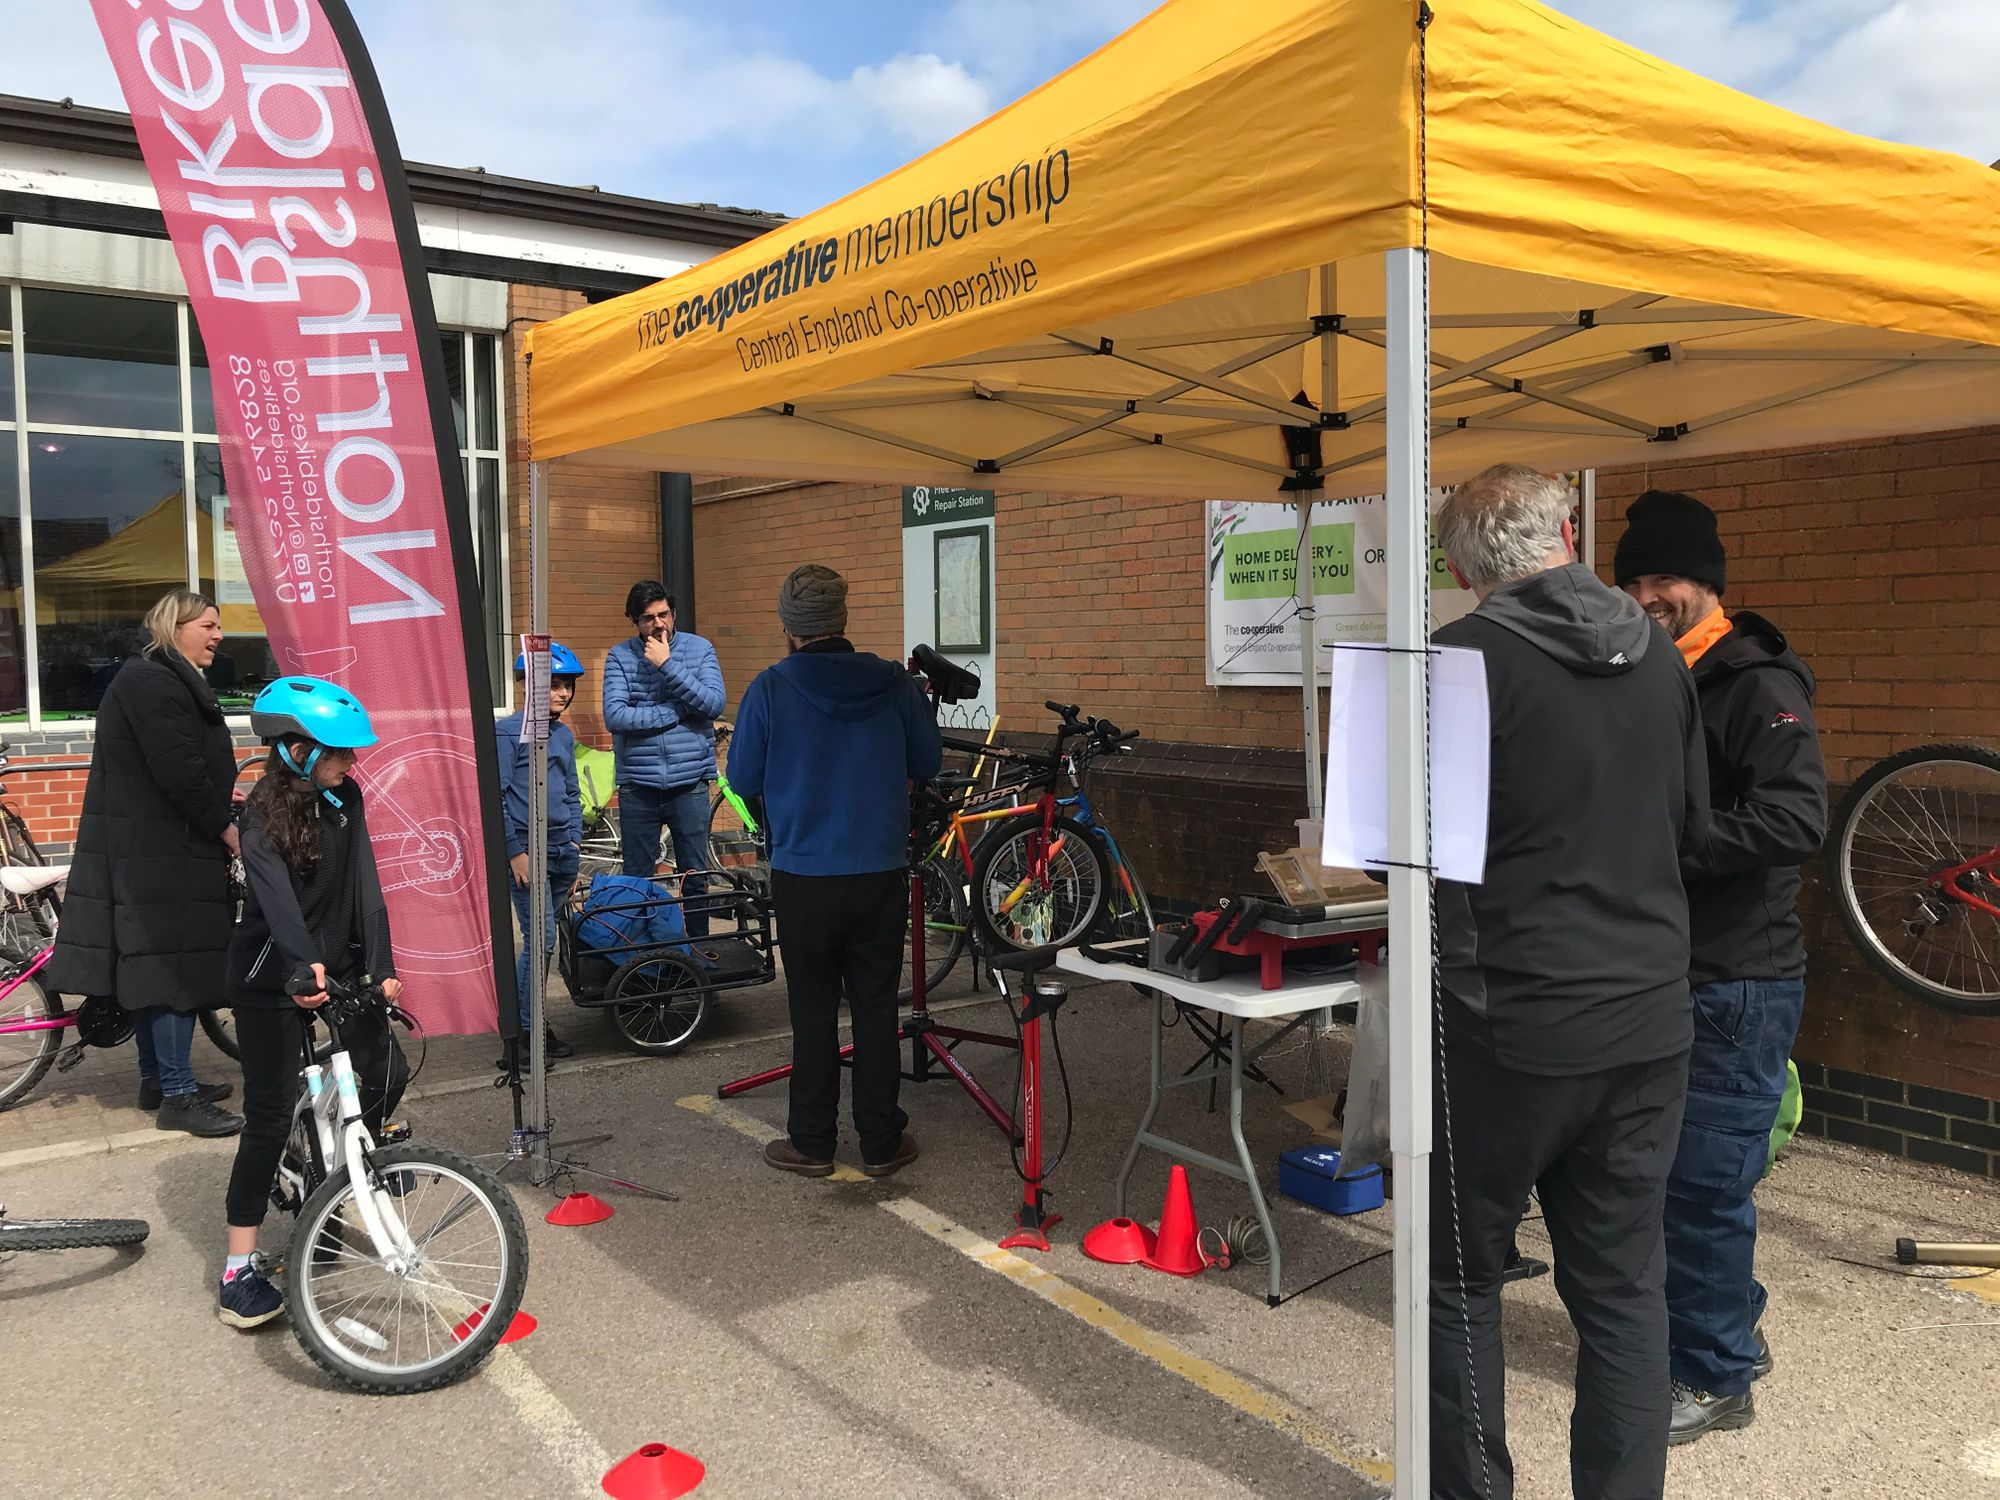 Recycle Your Bicycle/Dr Bike Event at Whetstone Store